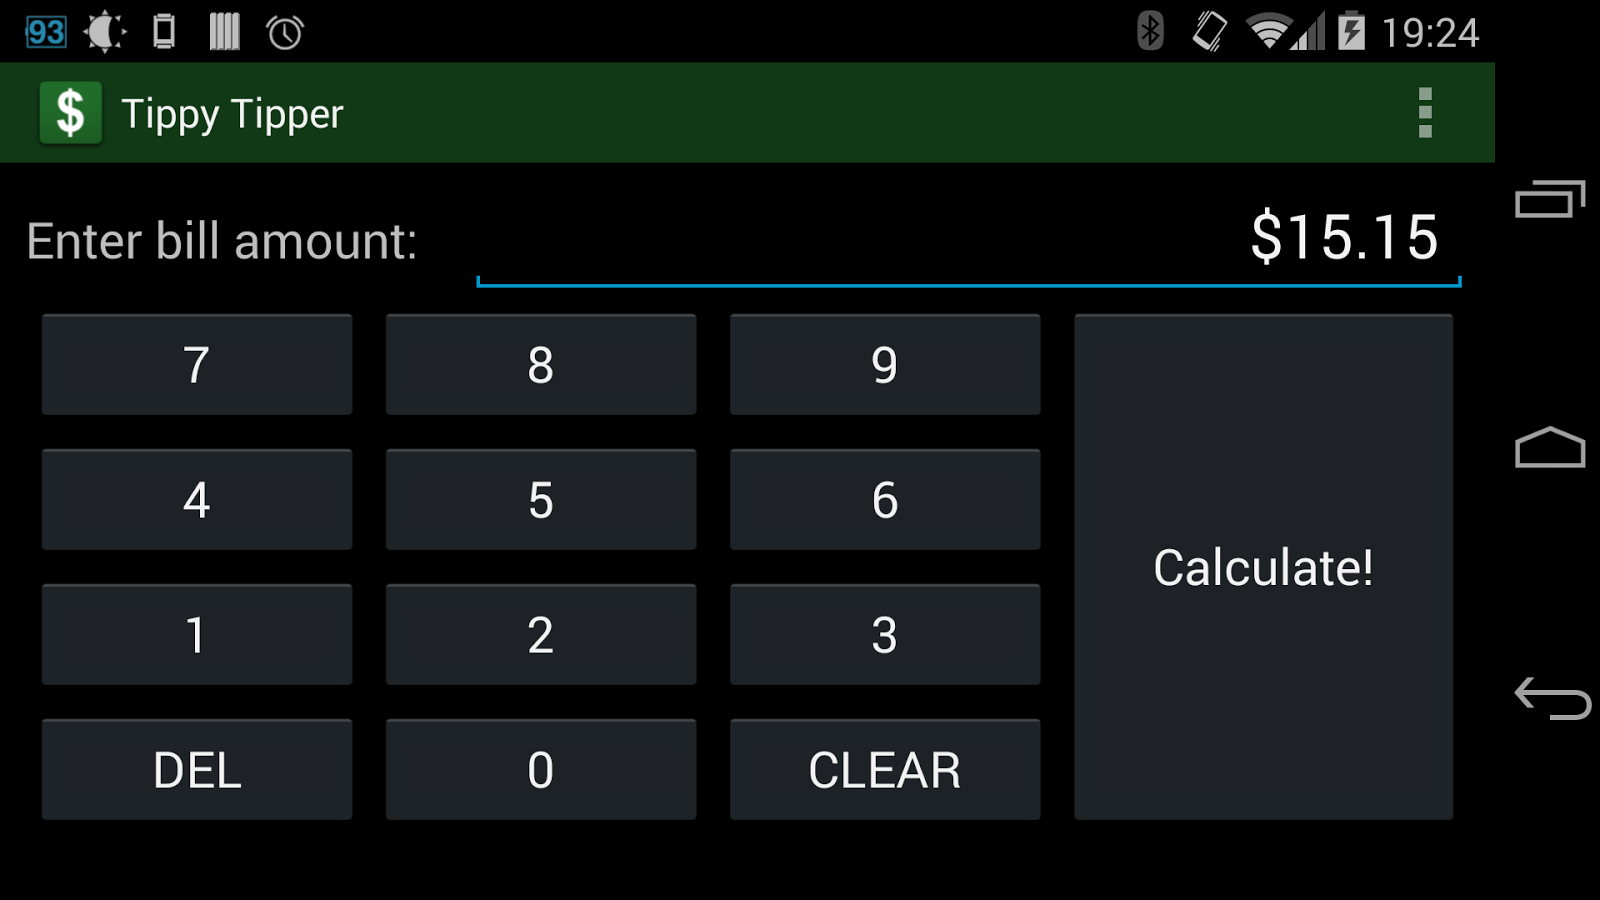 Tippy Tipper (Tip Calculator) - screenshot